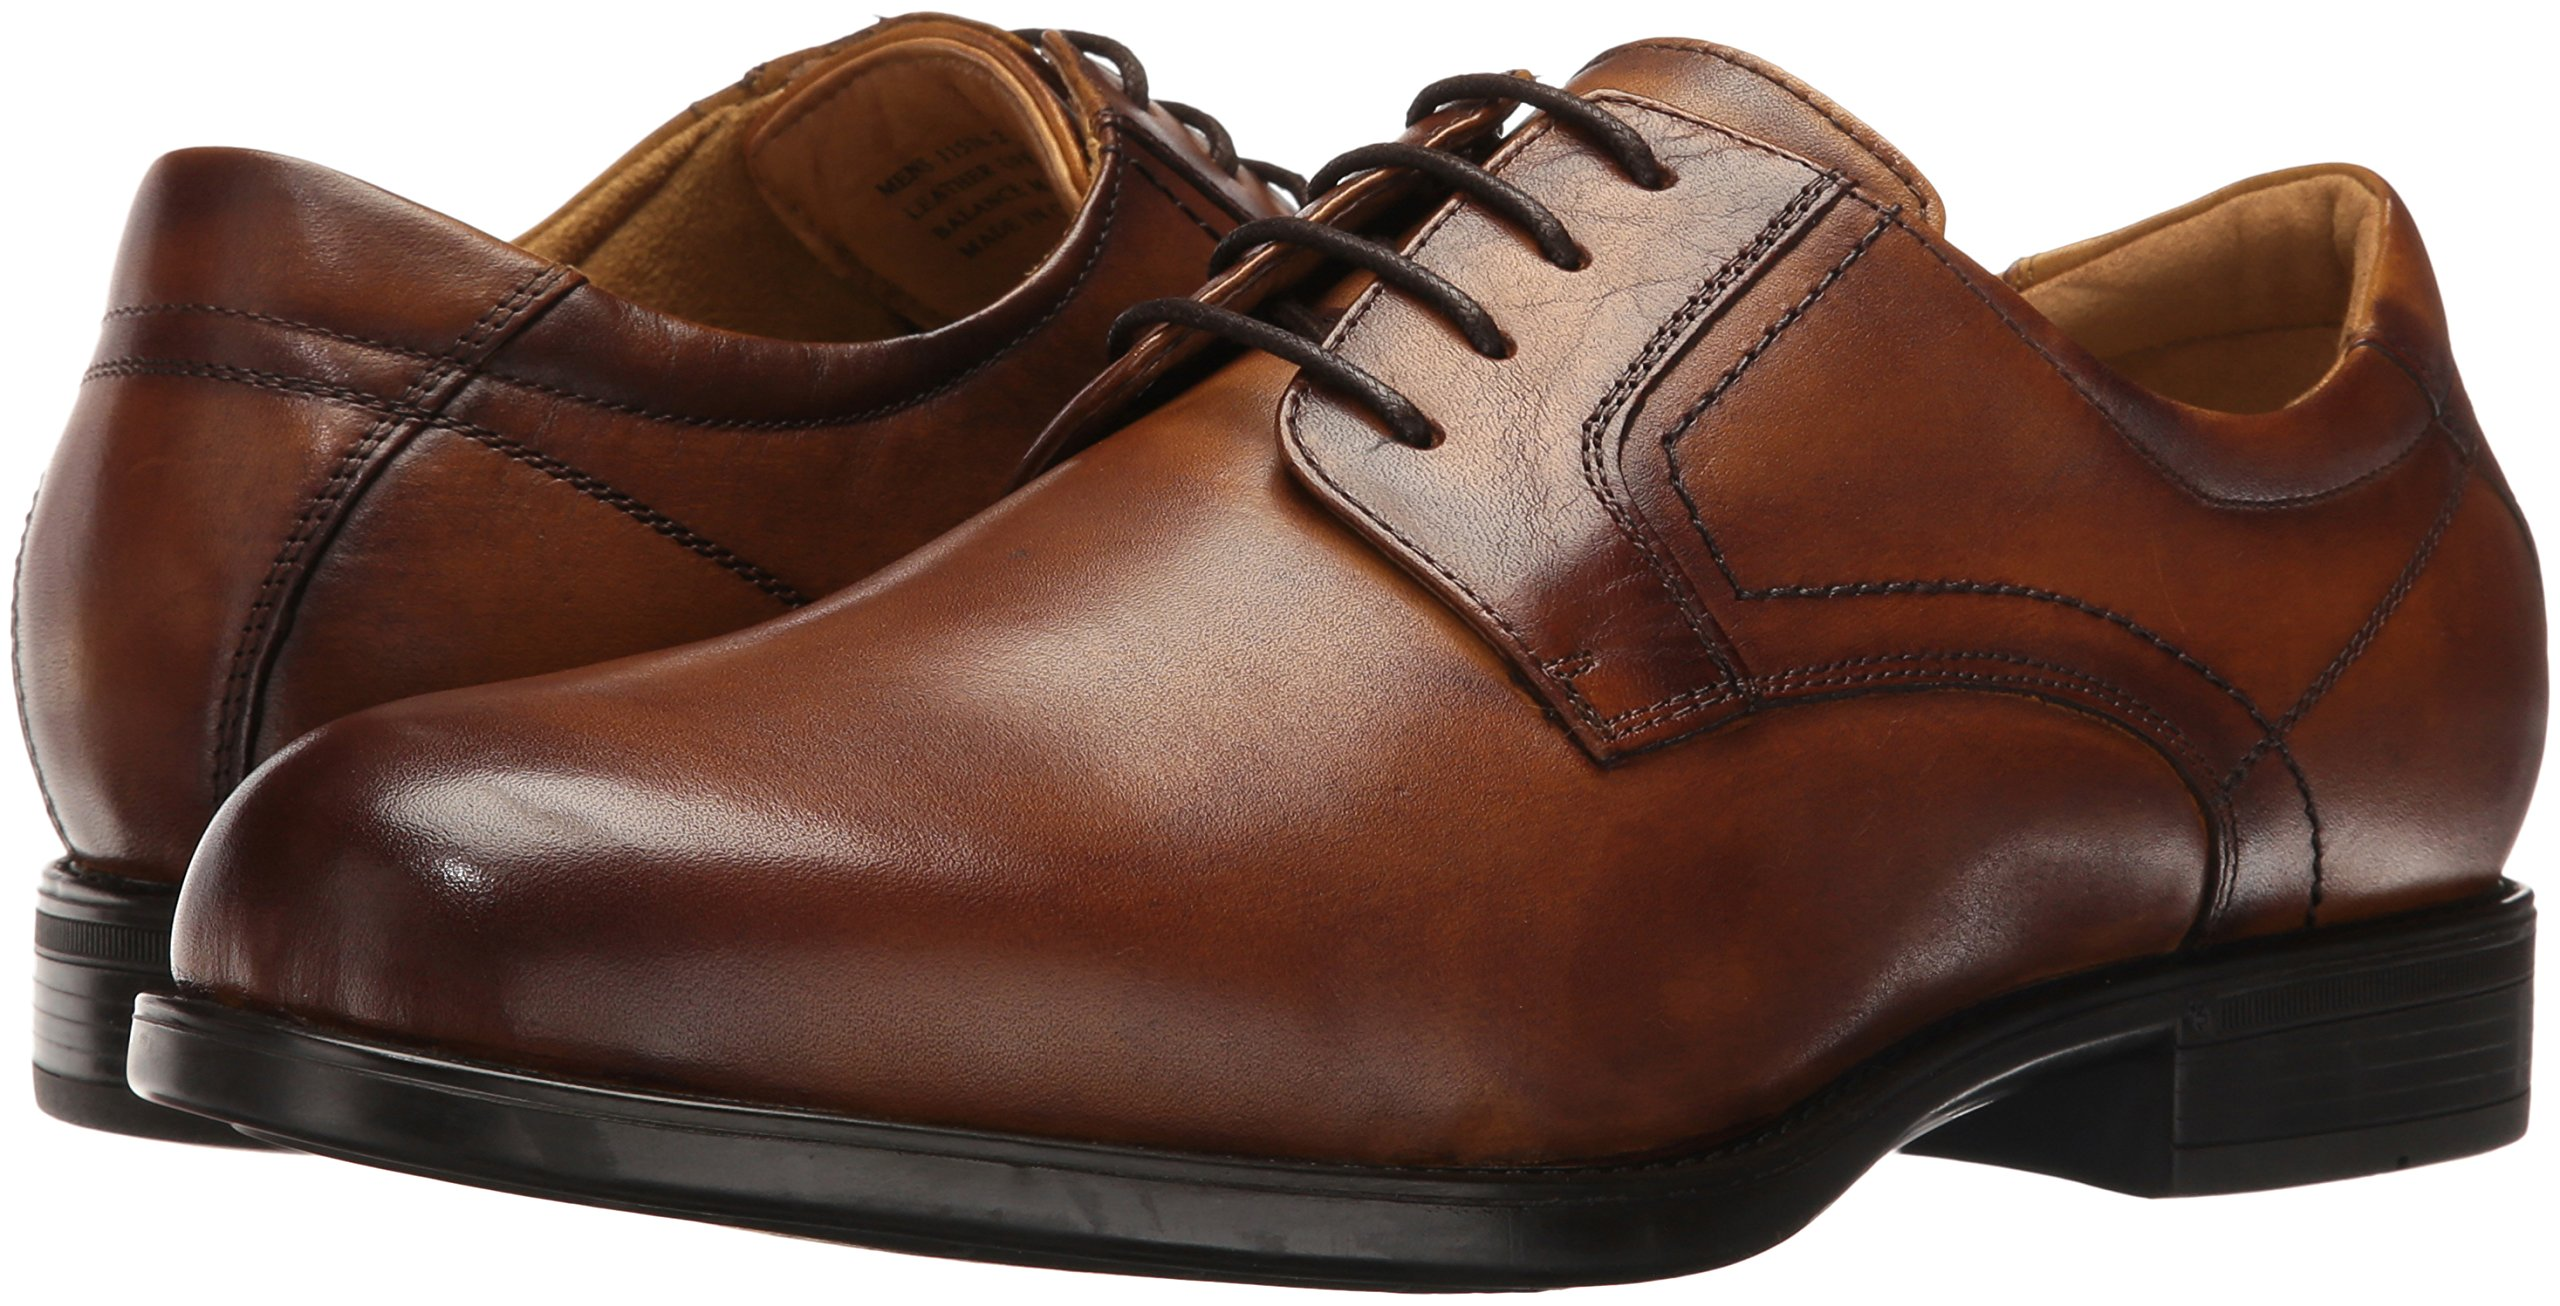 Florsheim Men's Medfield Plain Toe Oxford Dress Shoe, Cognac, 8 D US by Florsheim (Image #6)